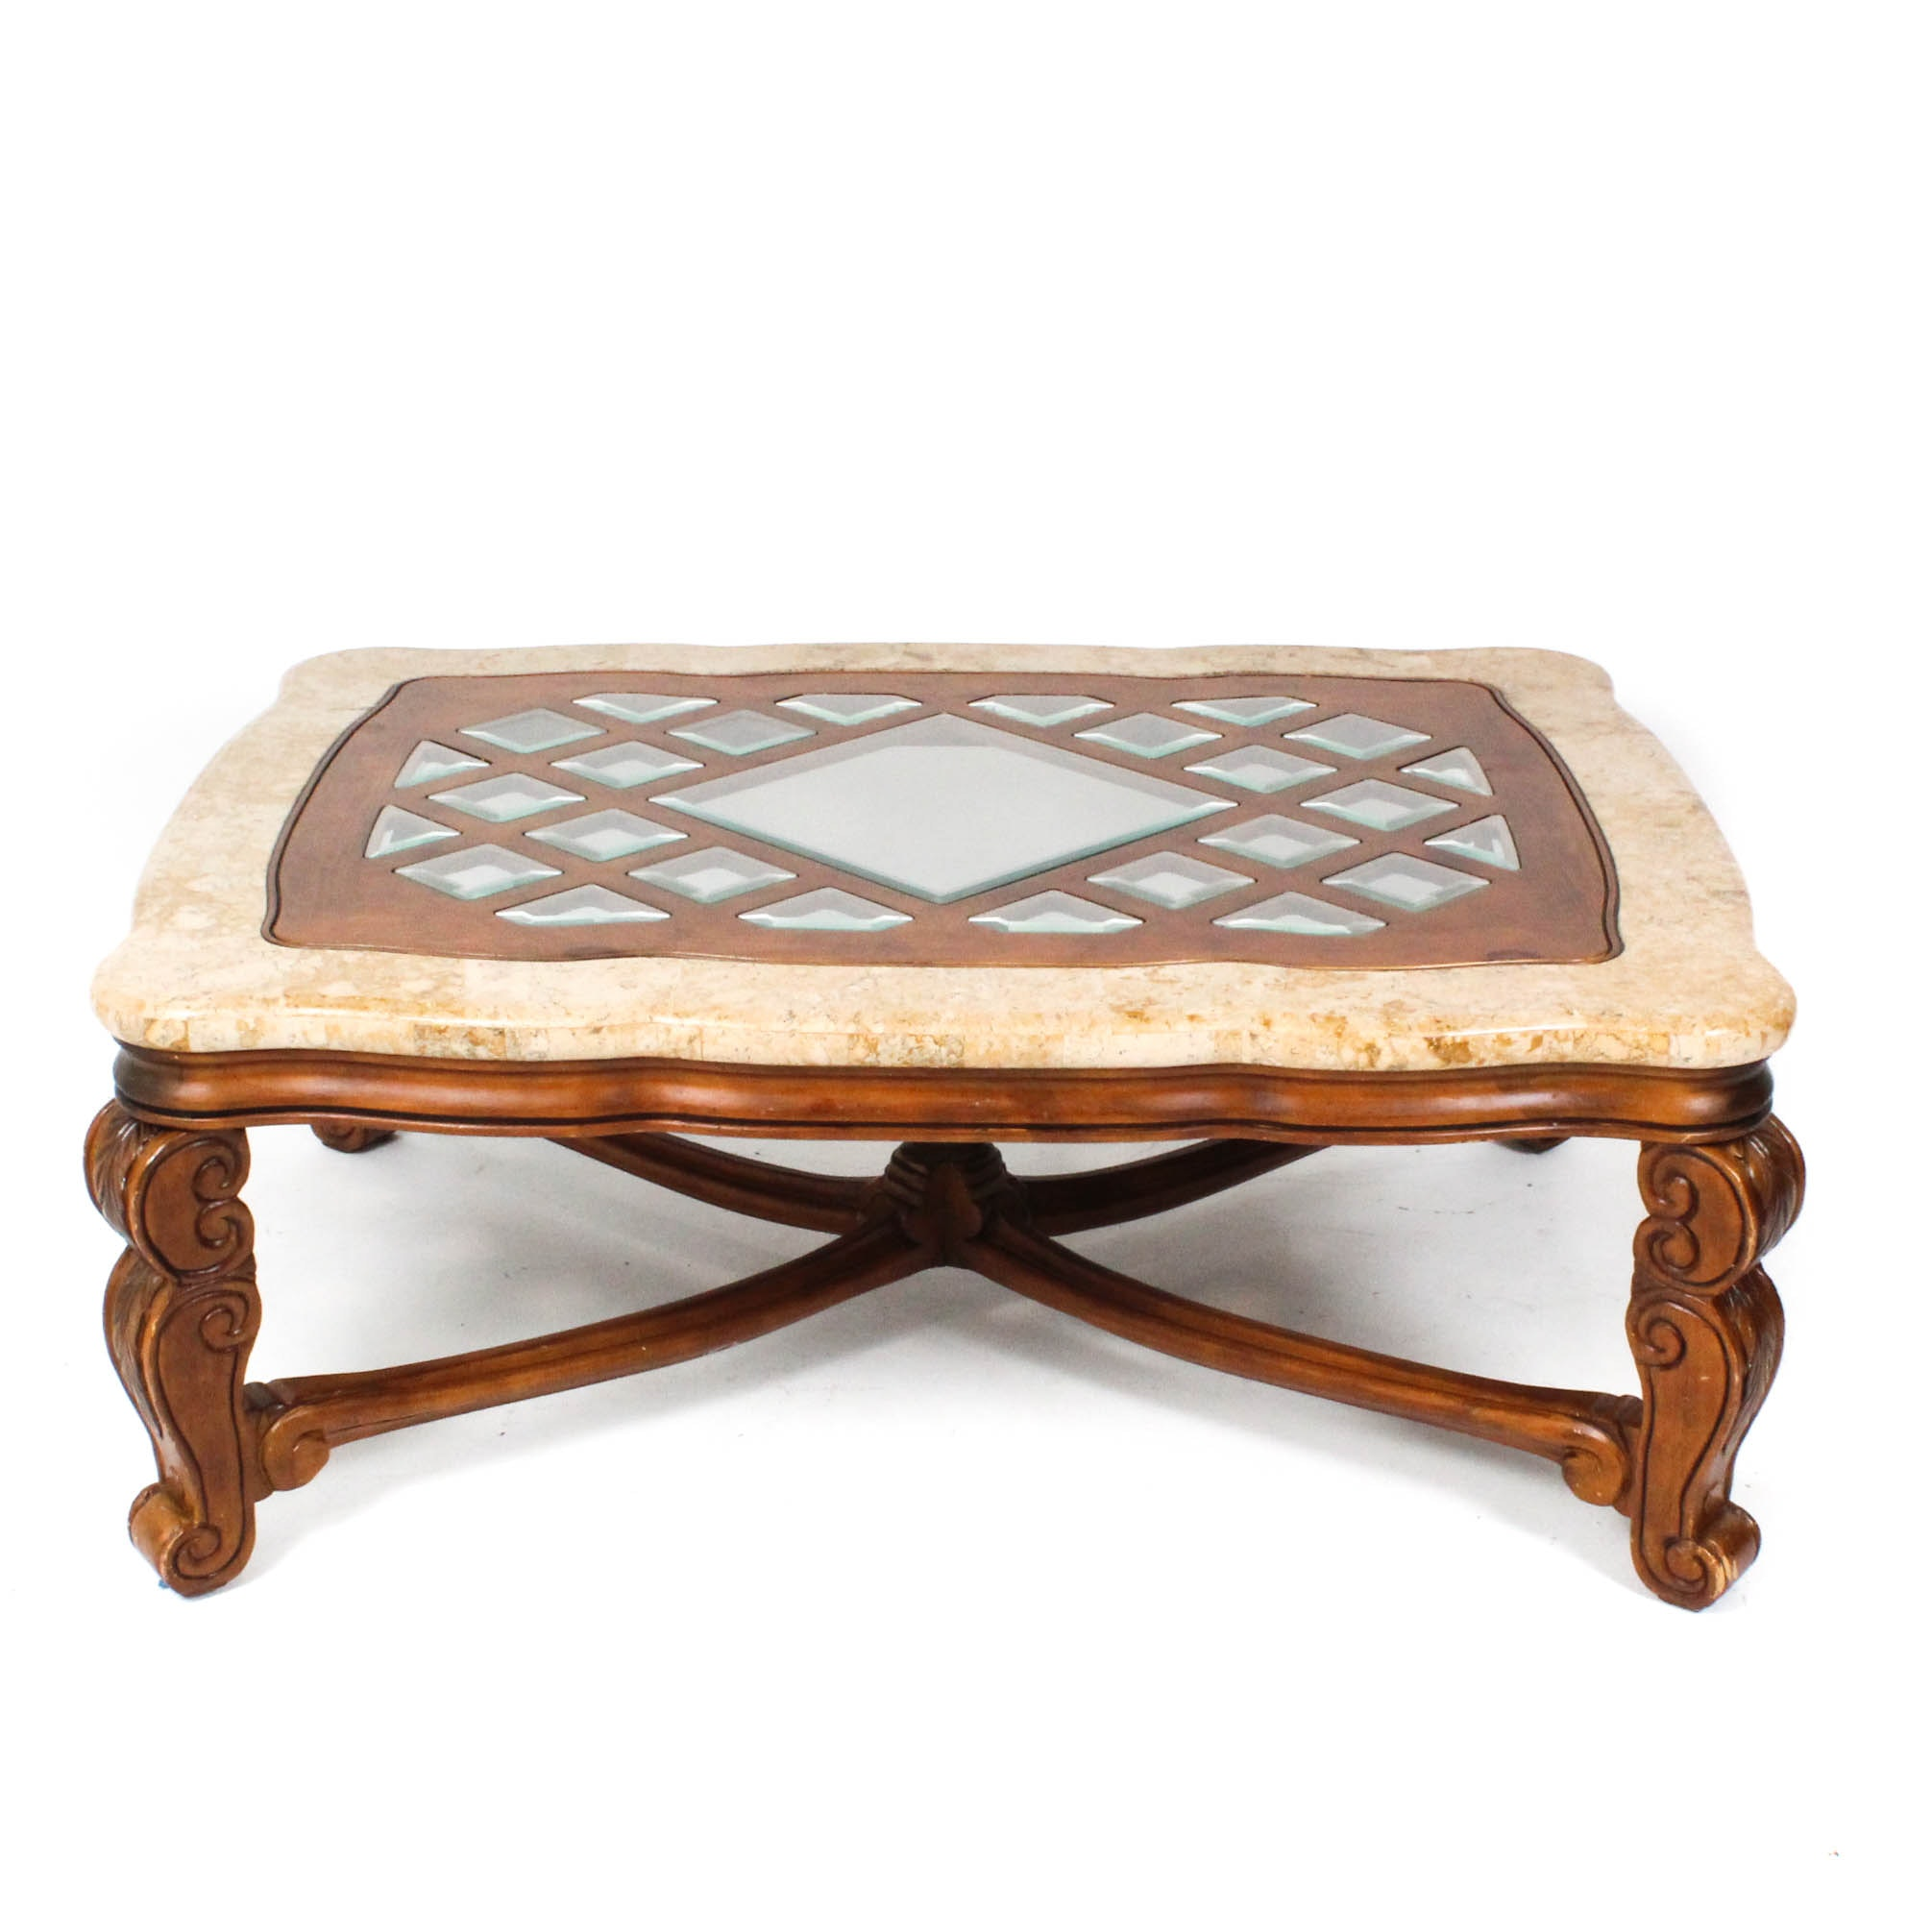 Michael Amini Marble and Wood Coffee Table